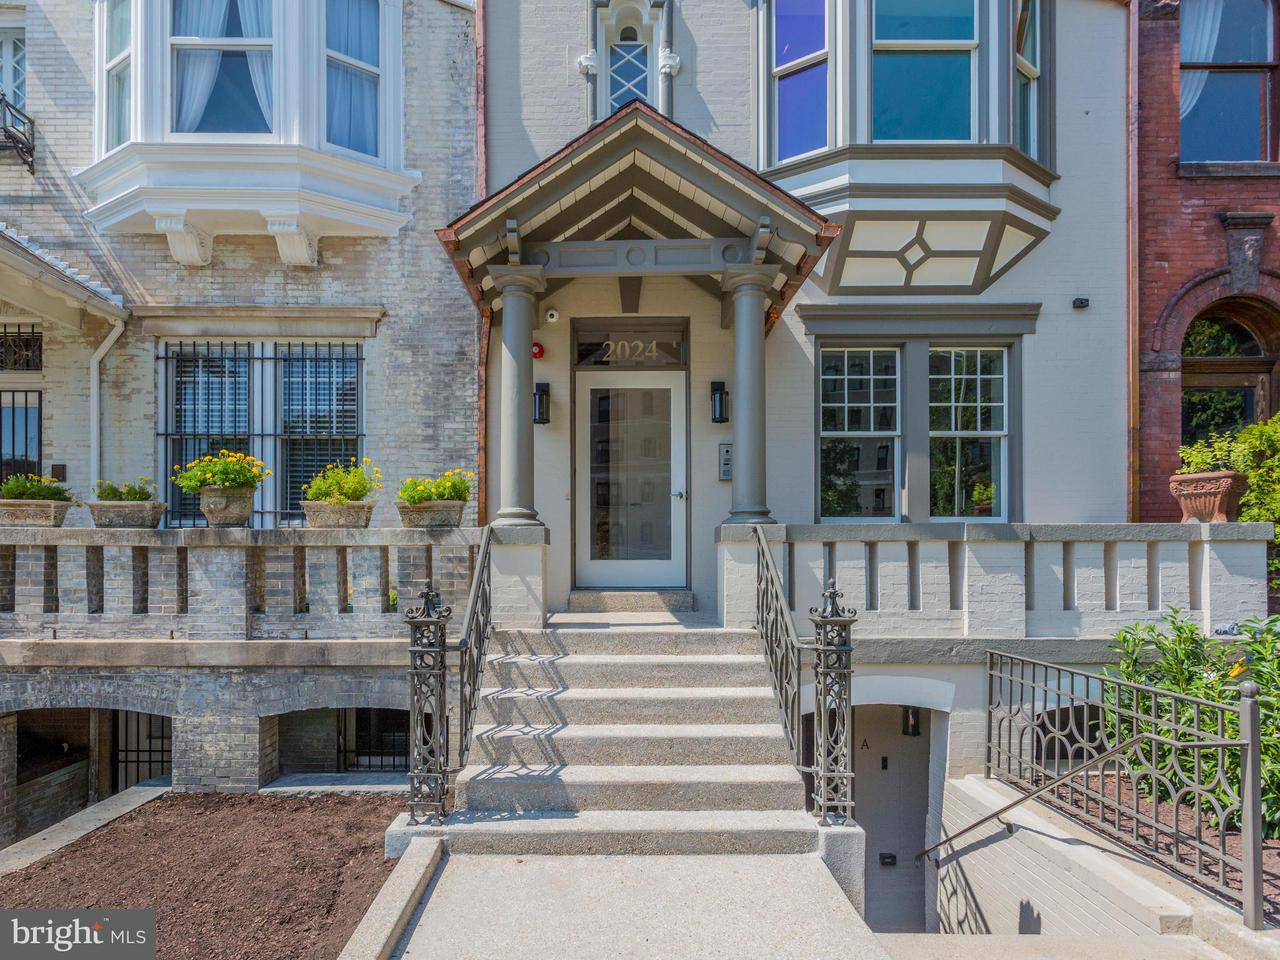 Single Family for Sale at 2024 16th St NW #1 Washington, District Of Columbia 20009 United States